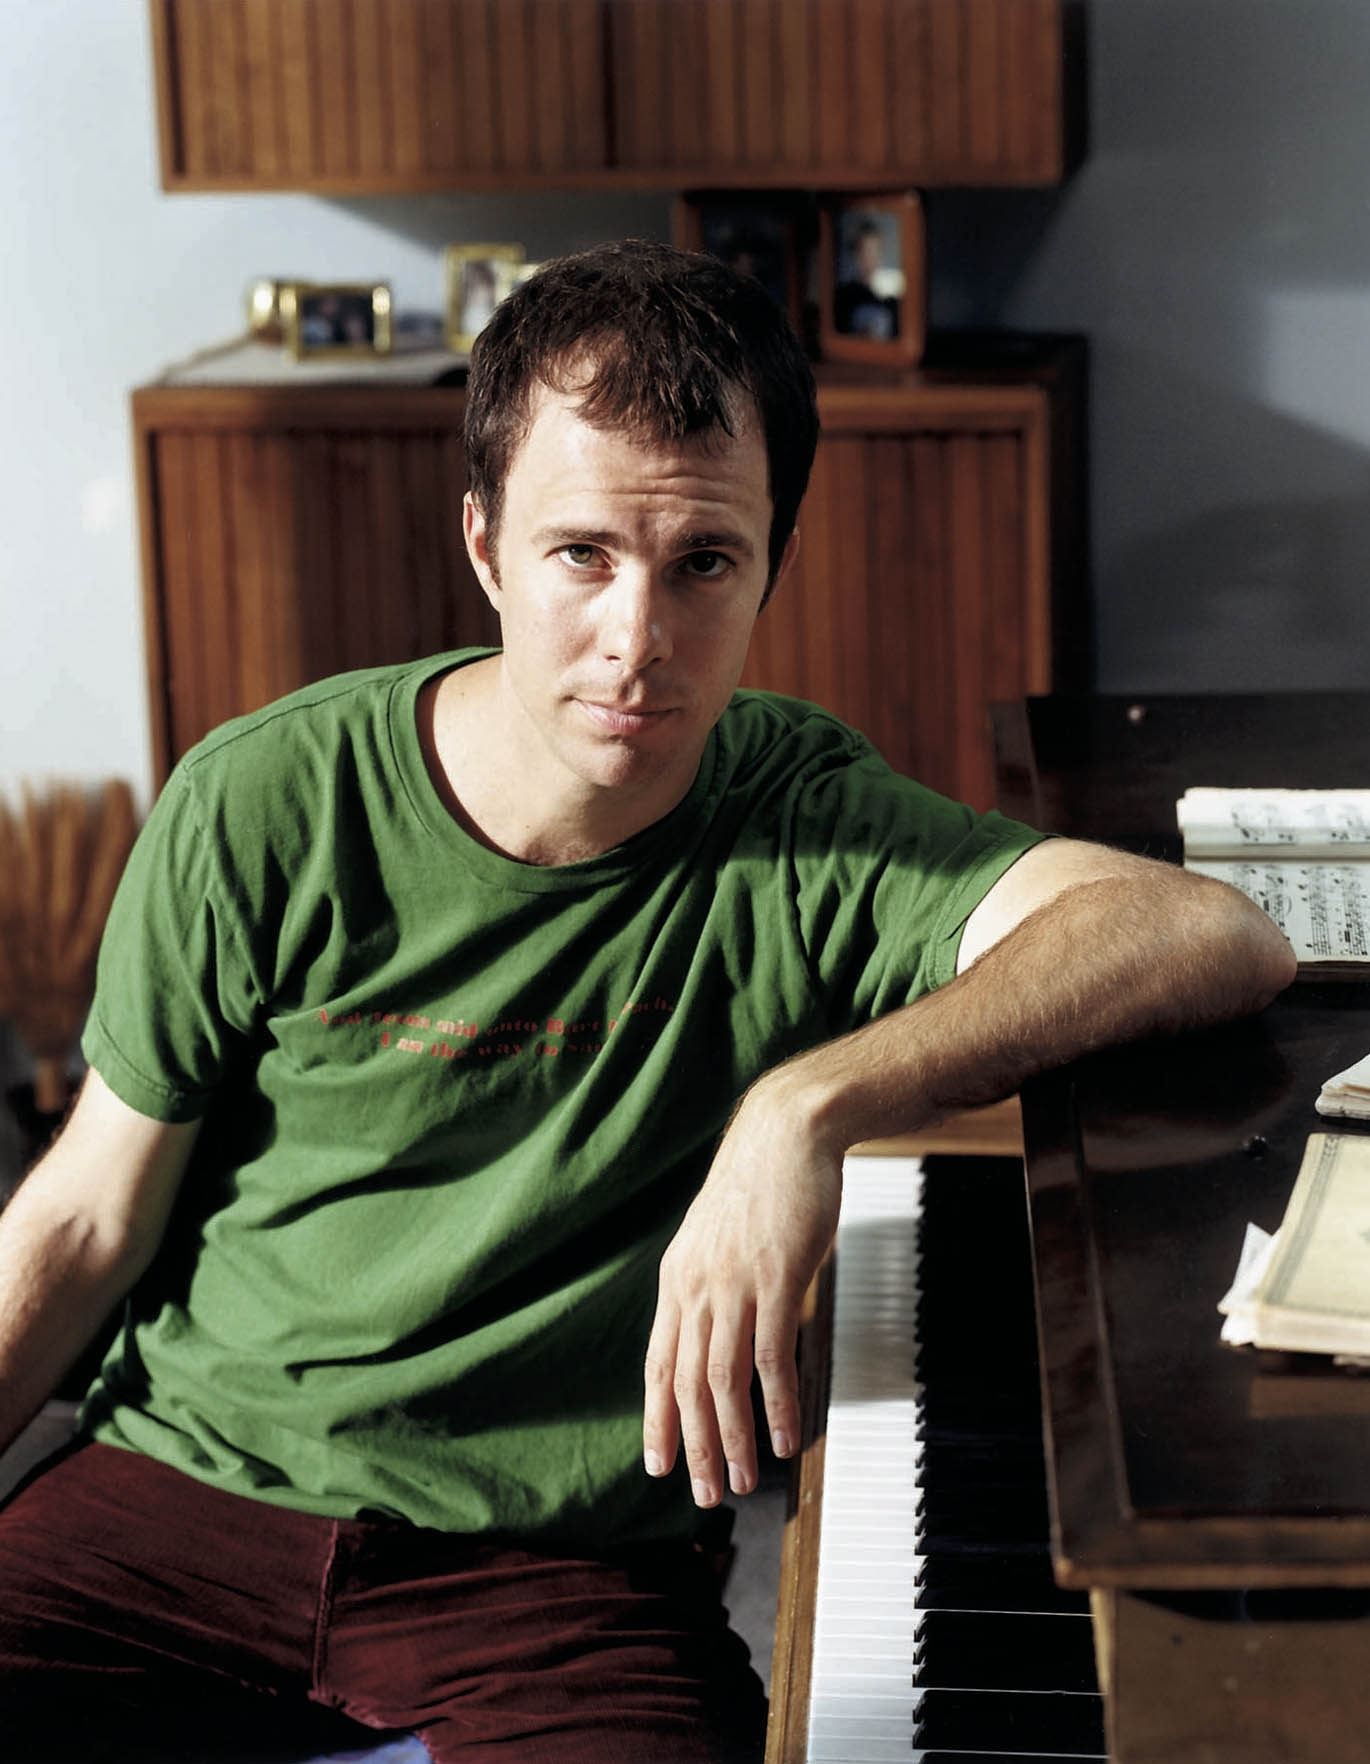 Ben Folds toured this time around with a drummer and Manhattan-based sextet.